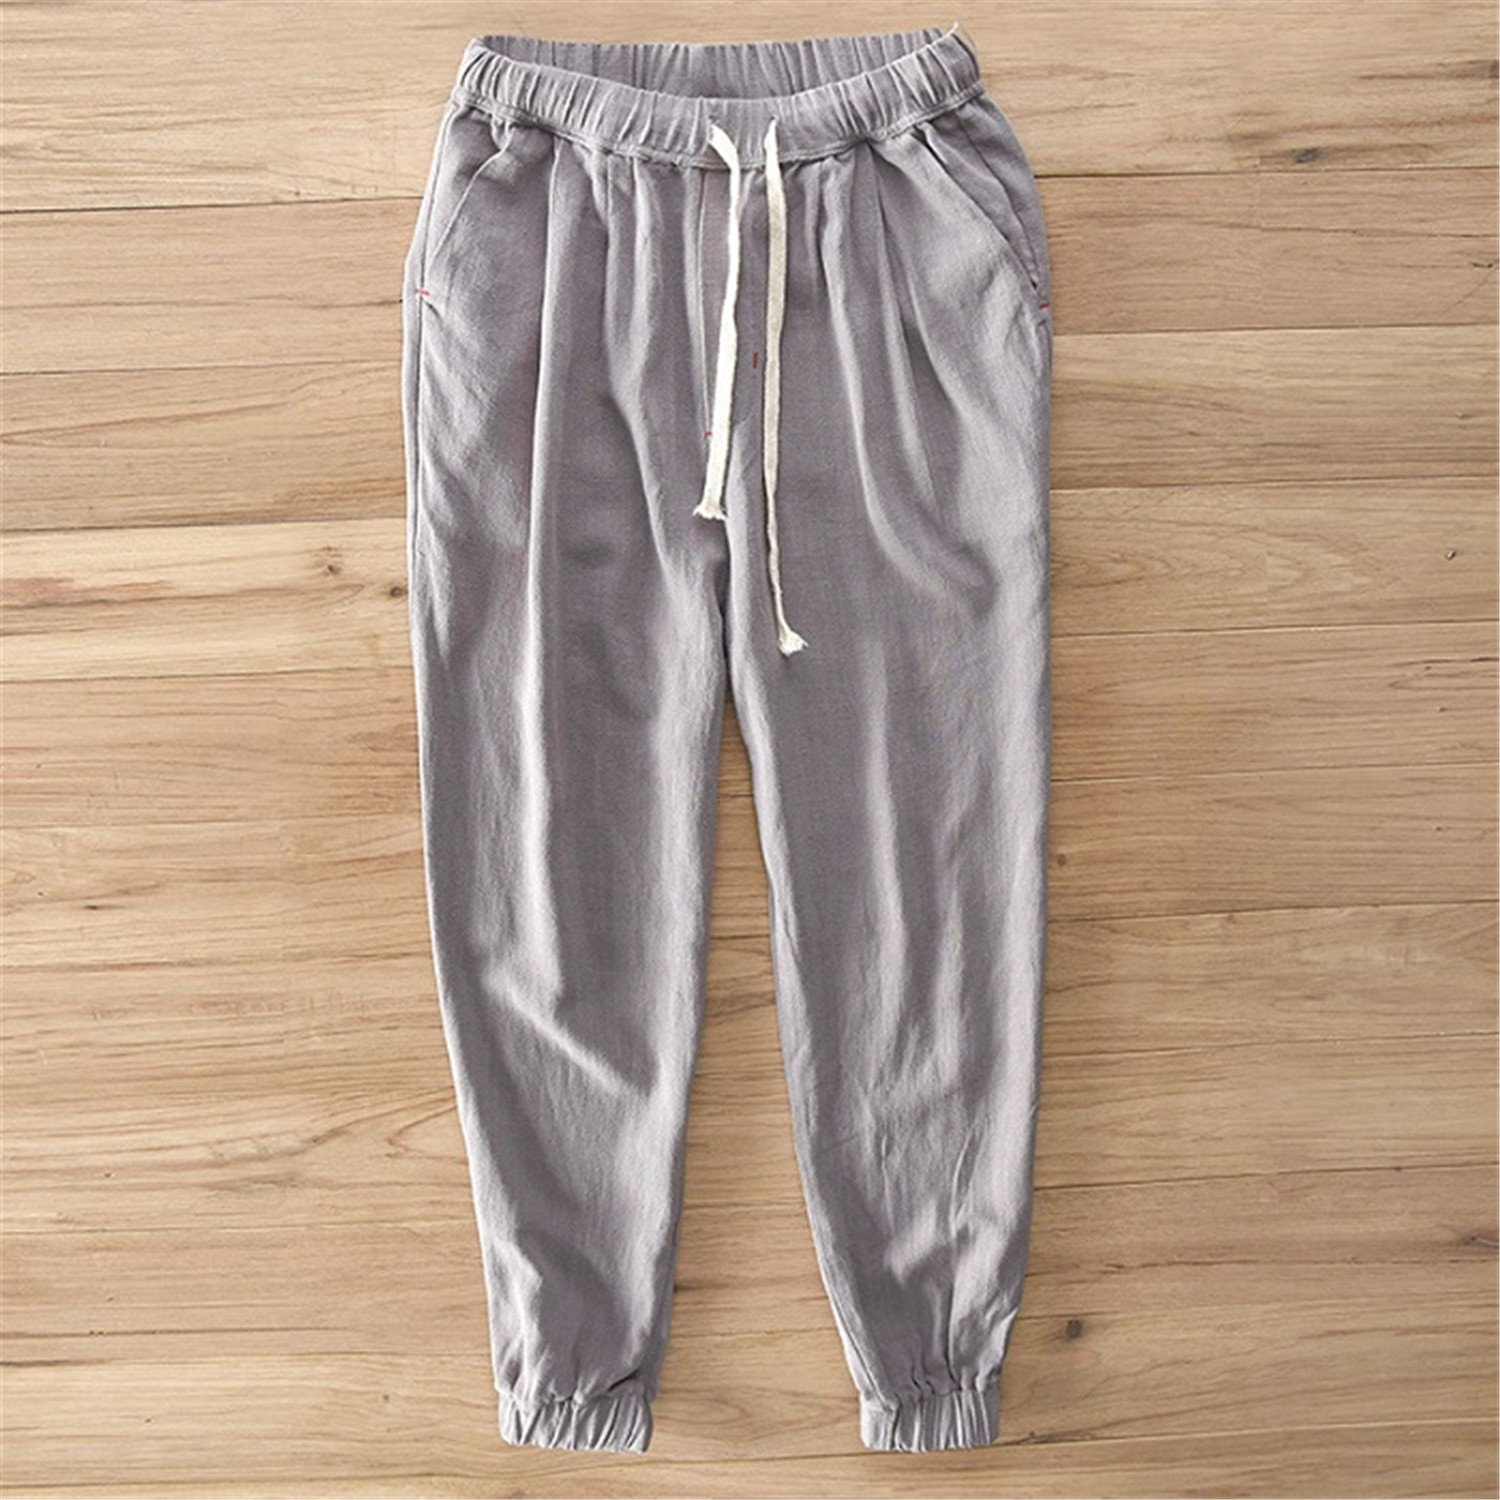 Welcometoo Plus Size S-5XL Mens Summer Casual Pants Cotton Linen Trousers White Elastic Straight Pants Y284